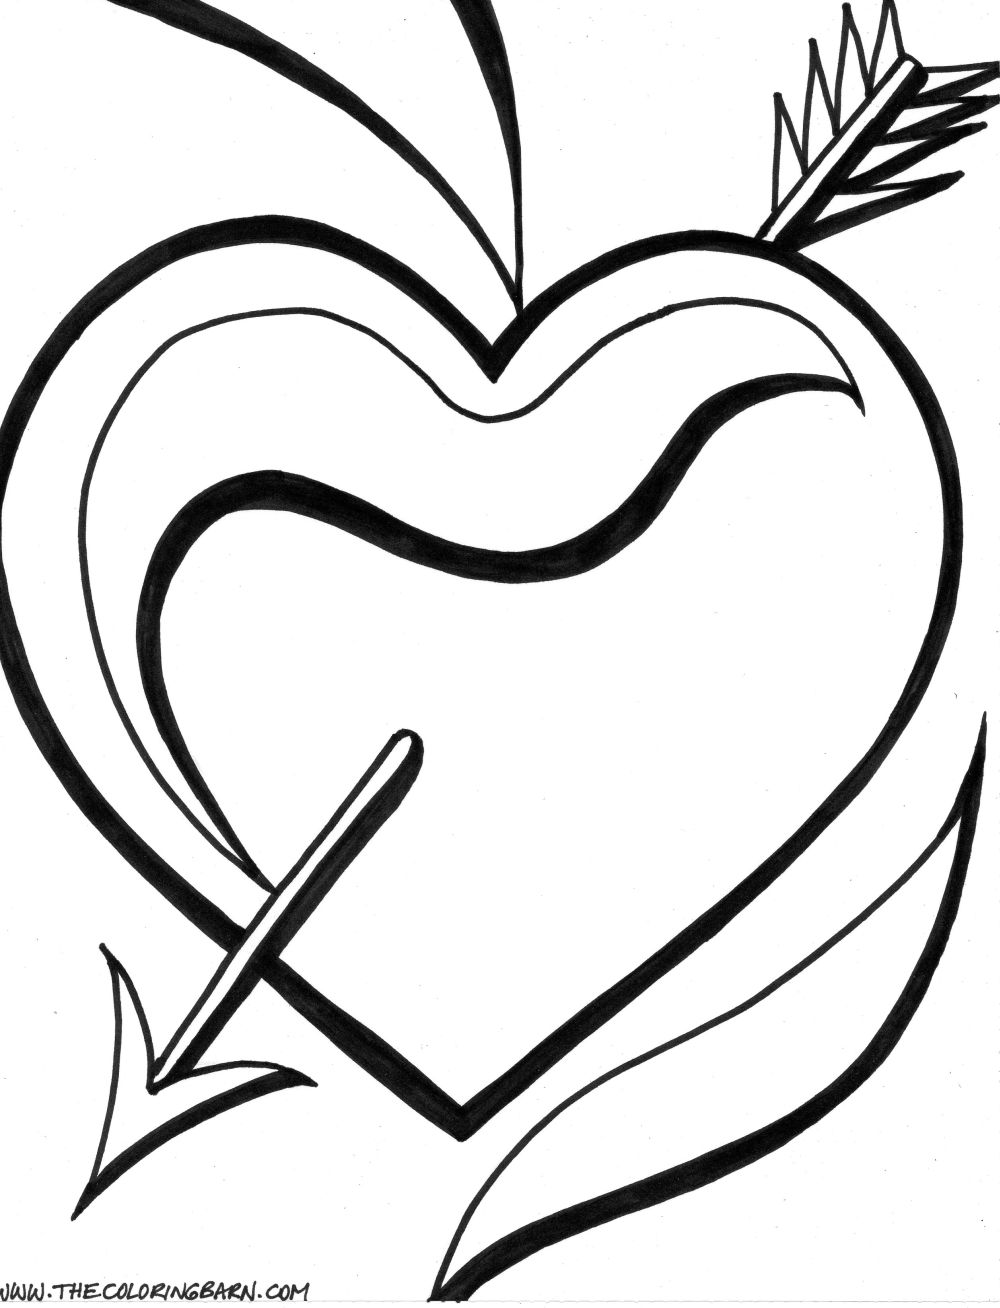 Coloring Pictures Of Hearts And Roses - Coloring Home